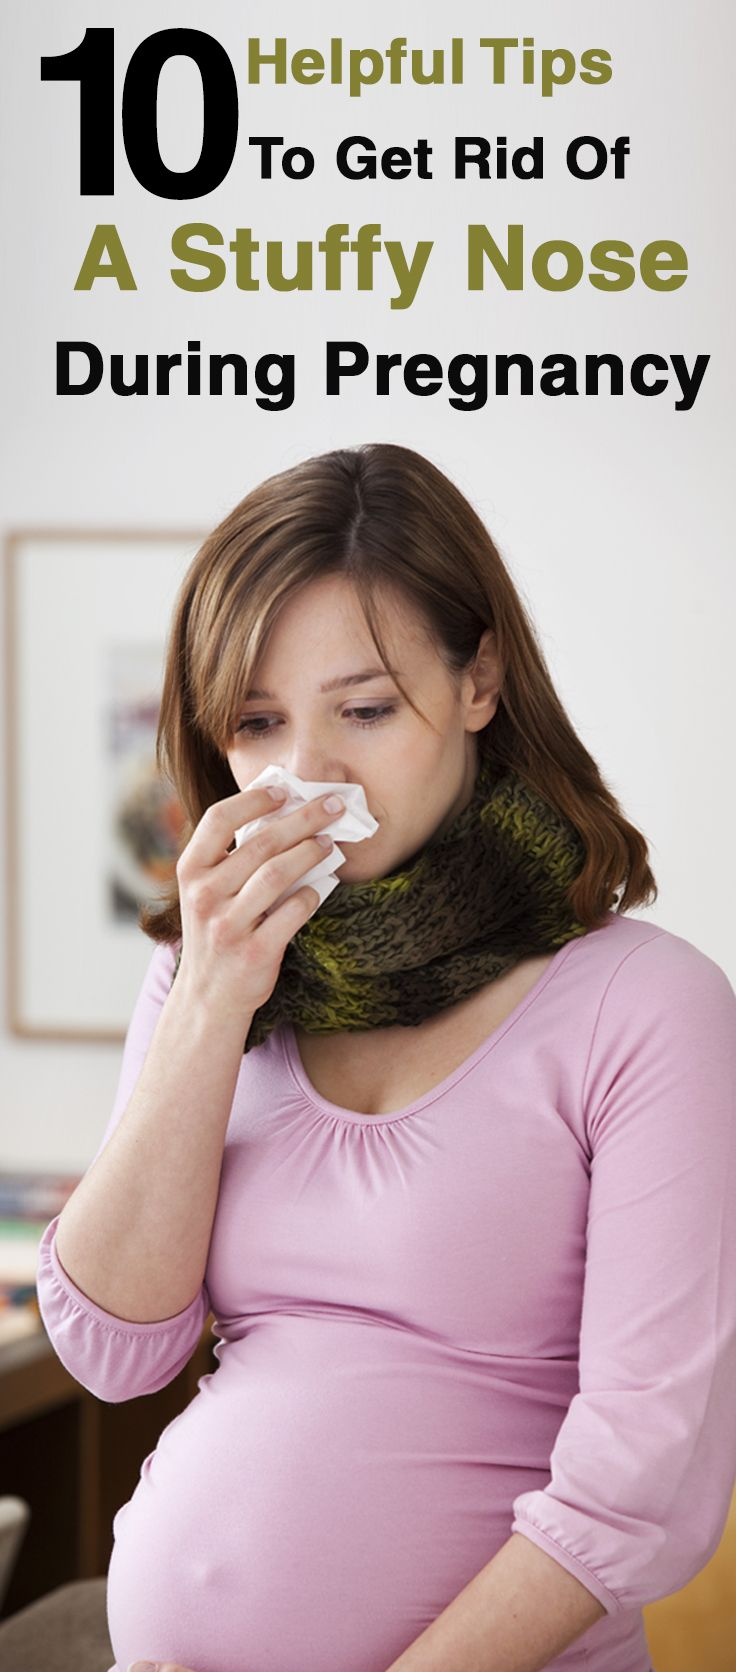 Stuffy Nose During Pregnancy